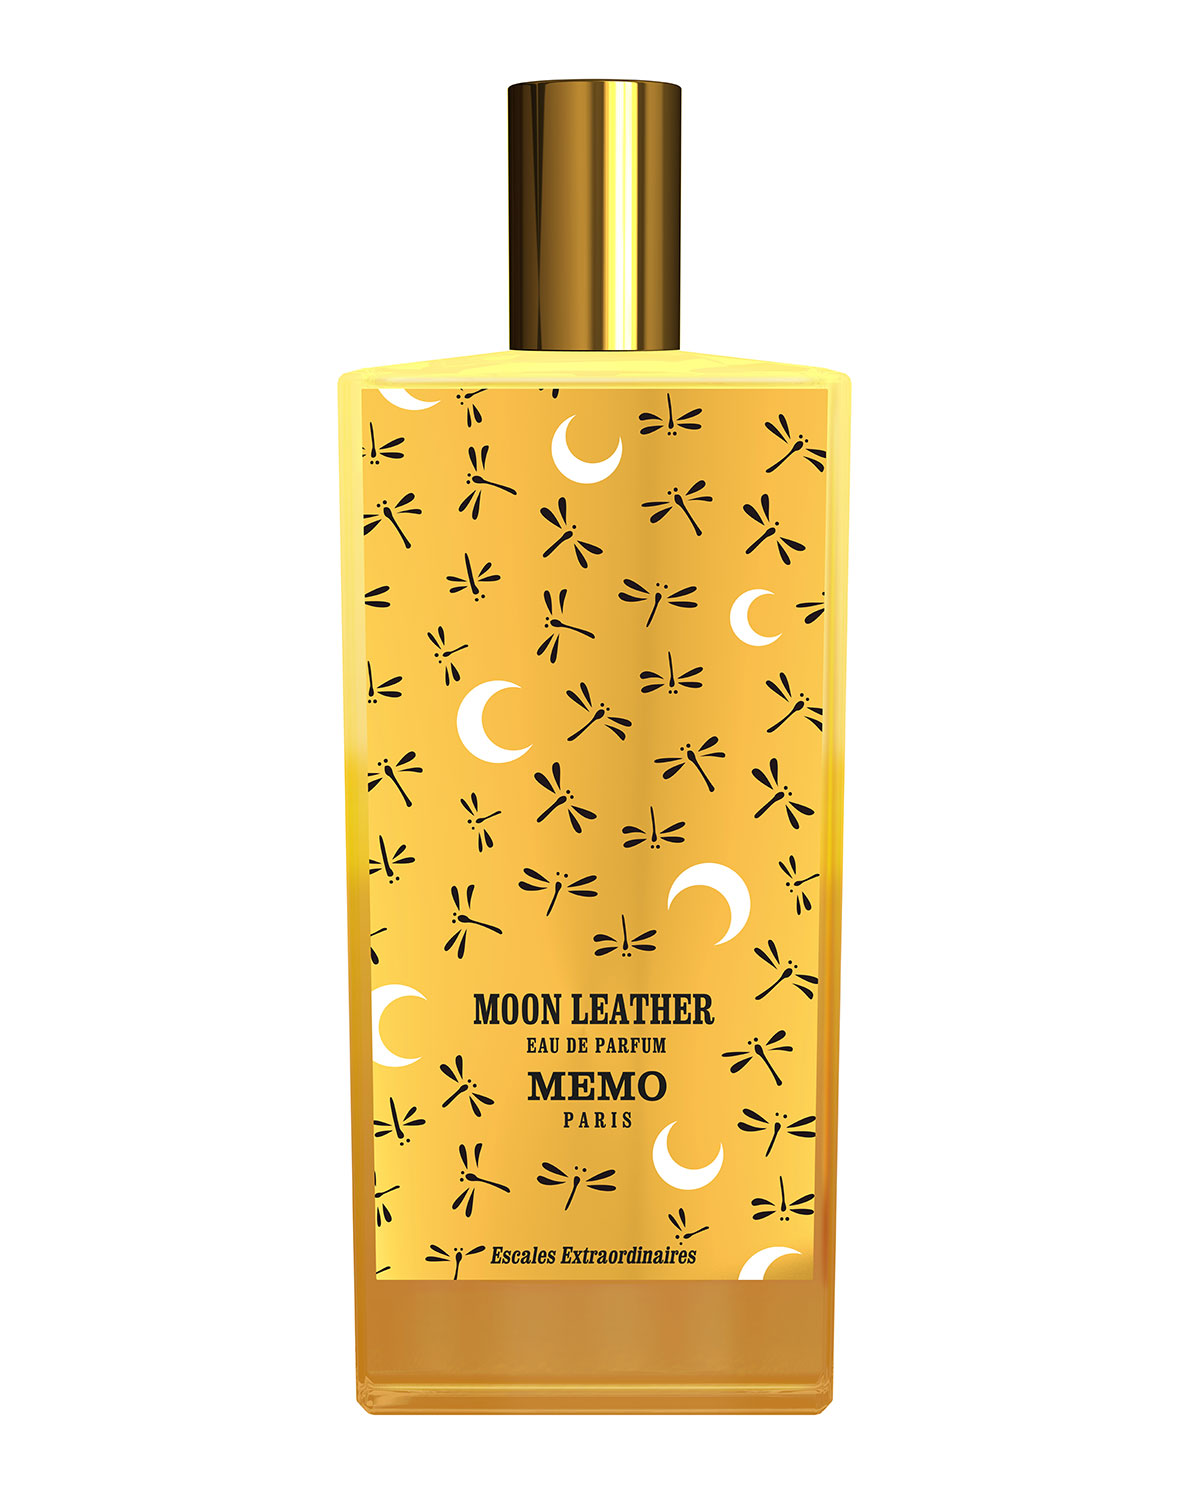 MEMO PARIS Moon Leather Eau De Parfum, 2.5 Oz./ 75 Ml